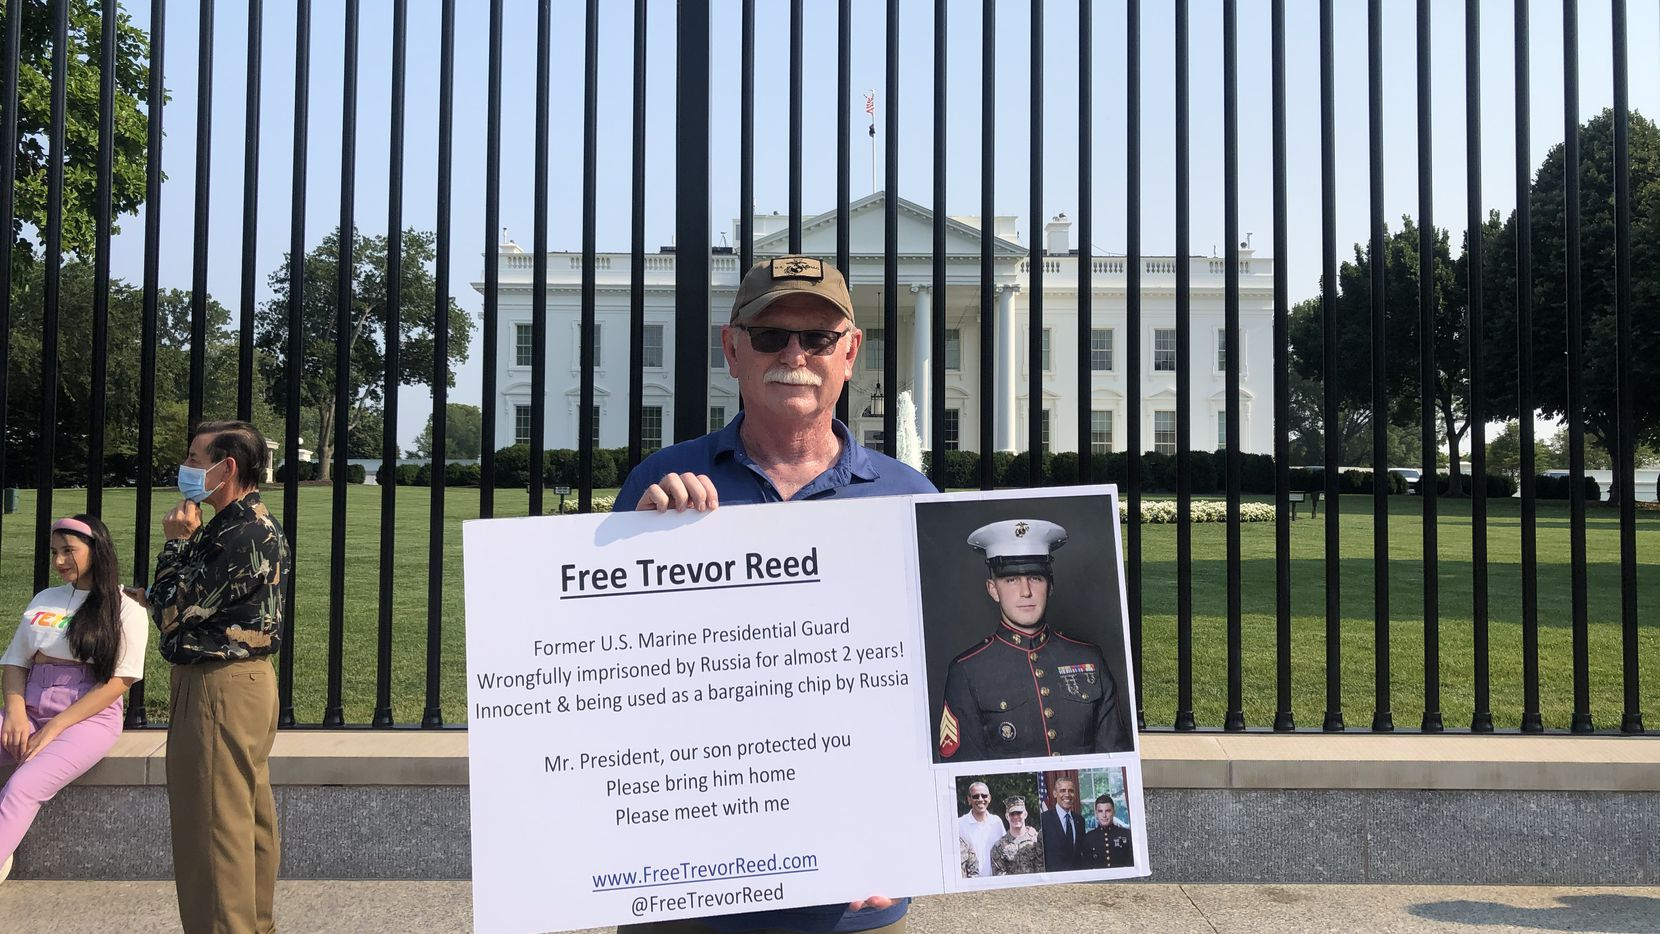 Joey Reed, a former Marine and longtime firefighter, has been tirelessly campaigning for his son's release for nearly two years. Trevor Reed was arrested in Moscow in 2019 and is serving a 9-year prison term.